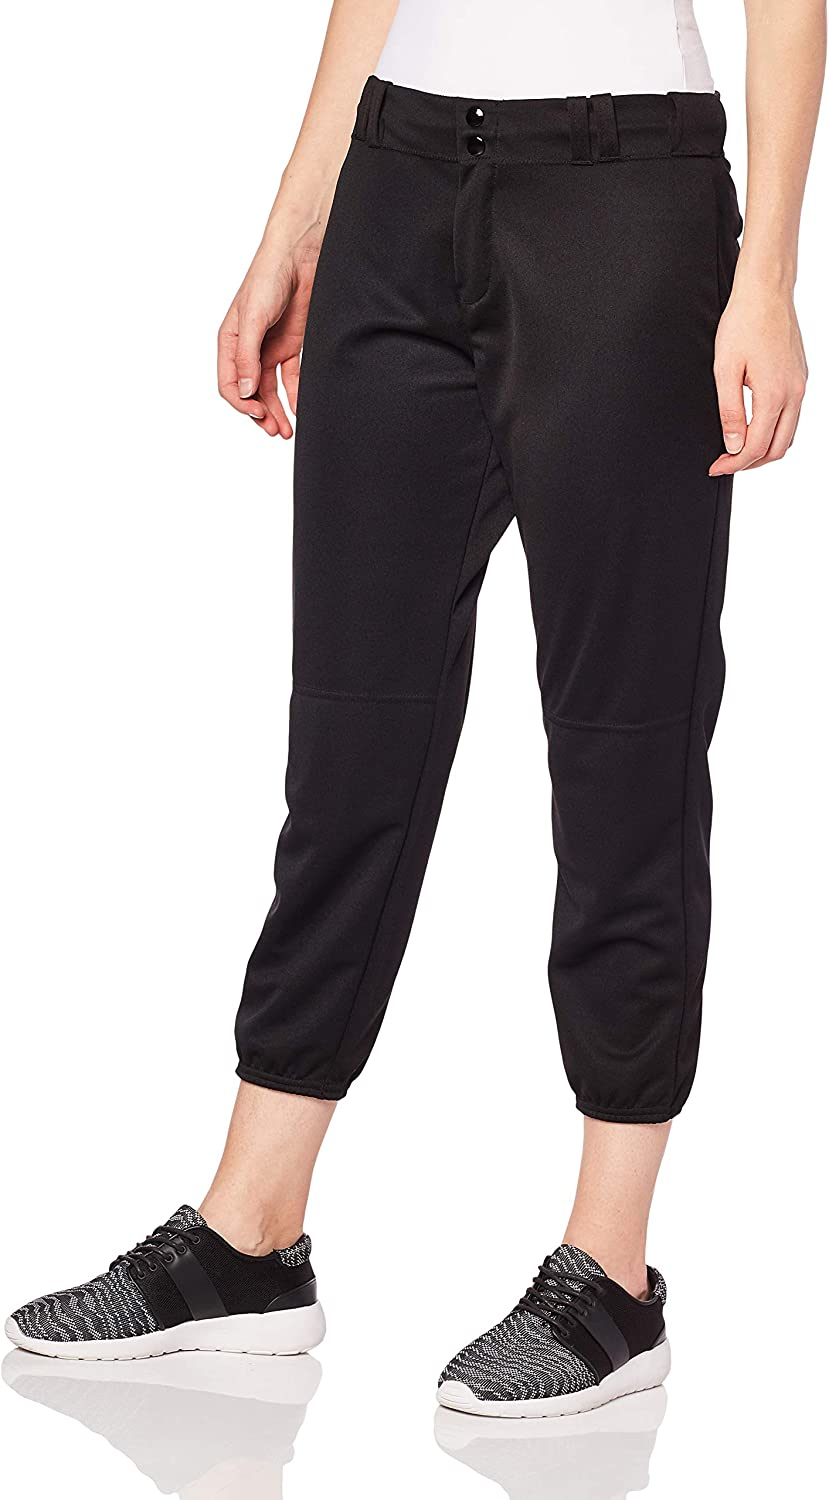 Softball Black Legging The Perfect Everyday Classic Tights for Athletic Girls and Women